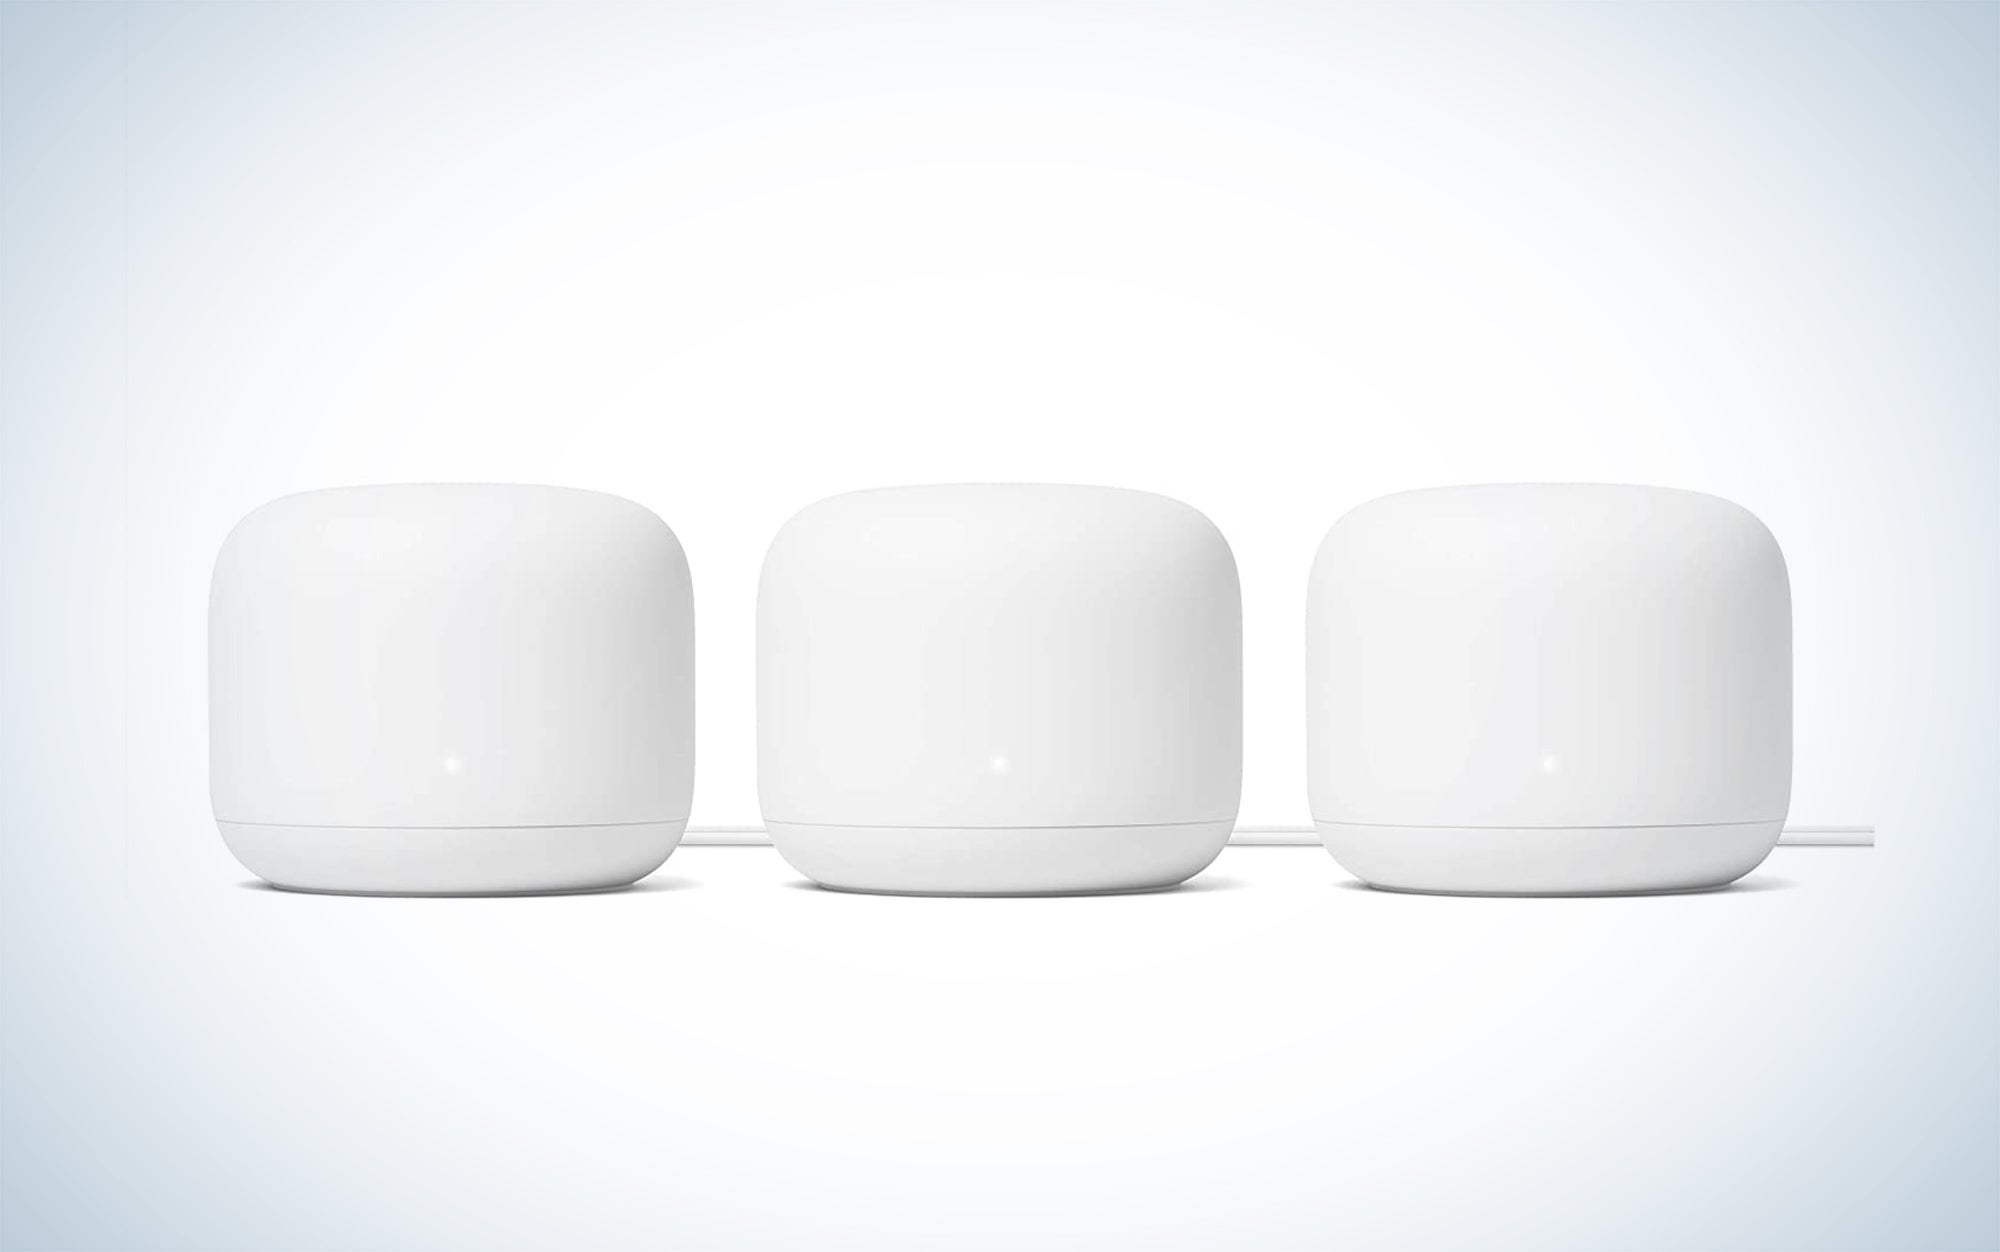 Google Nest WiFi Router 4x4 AC2200